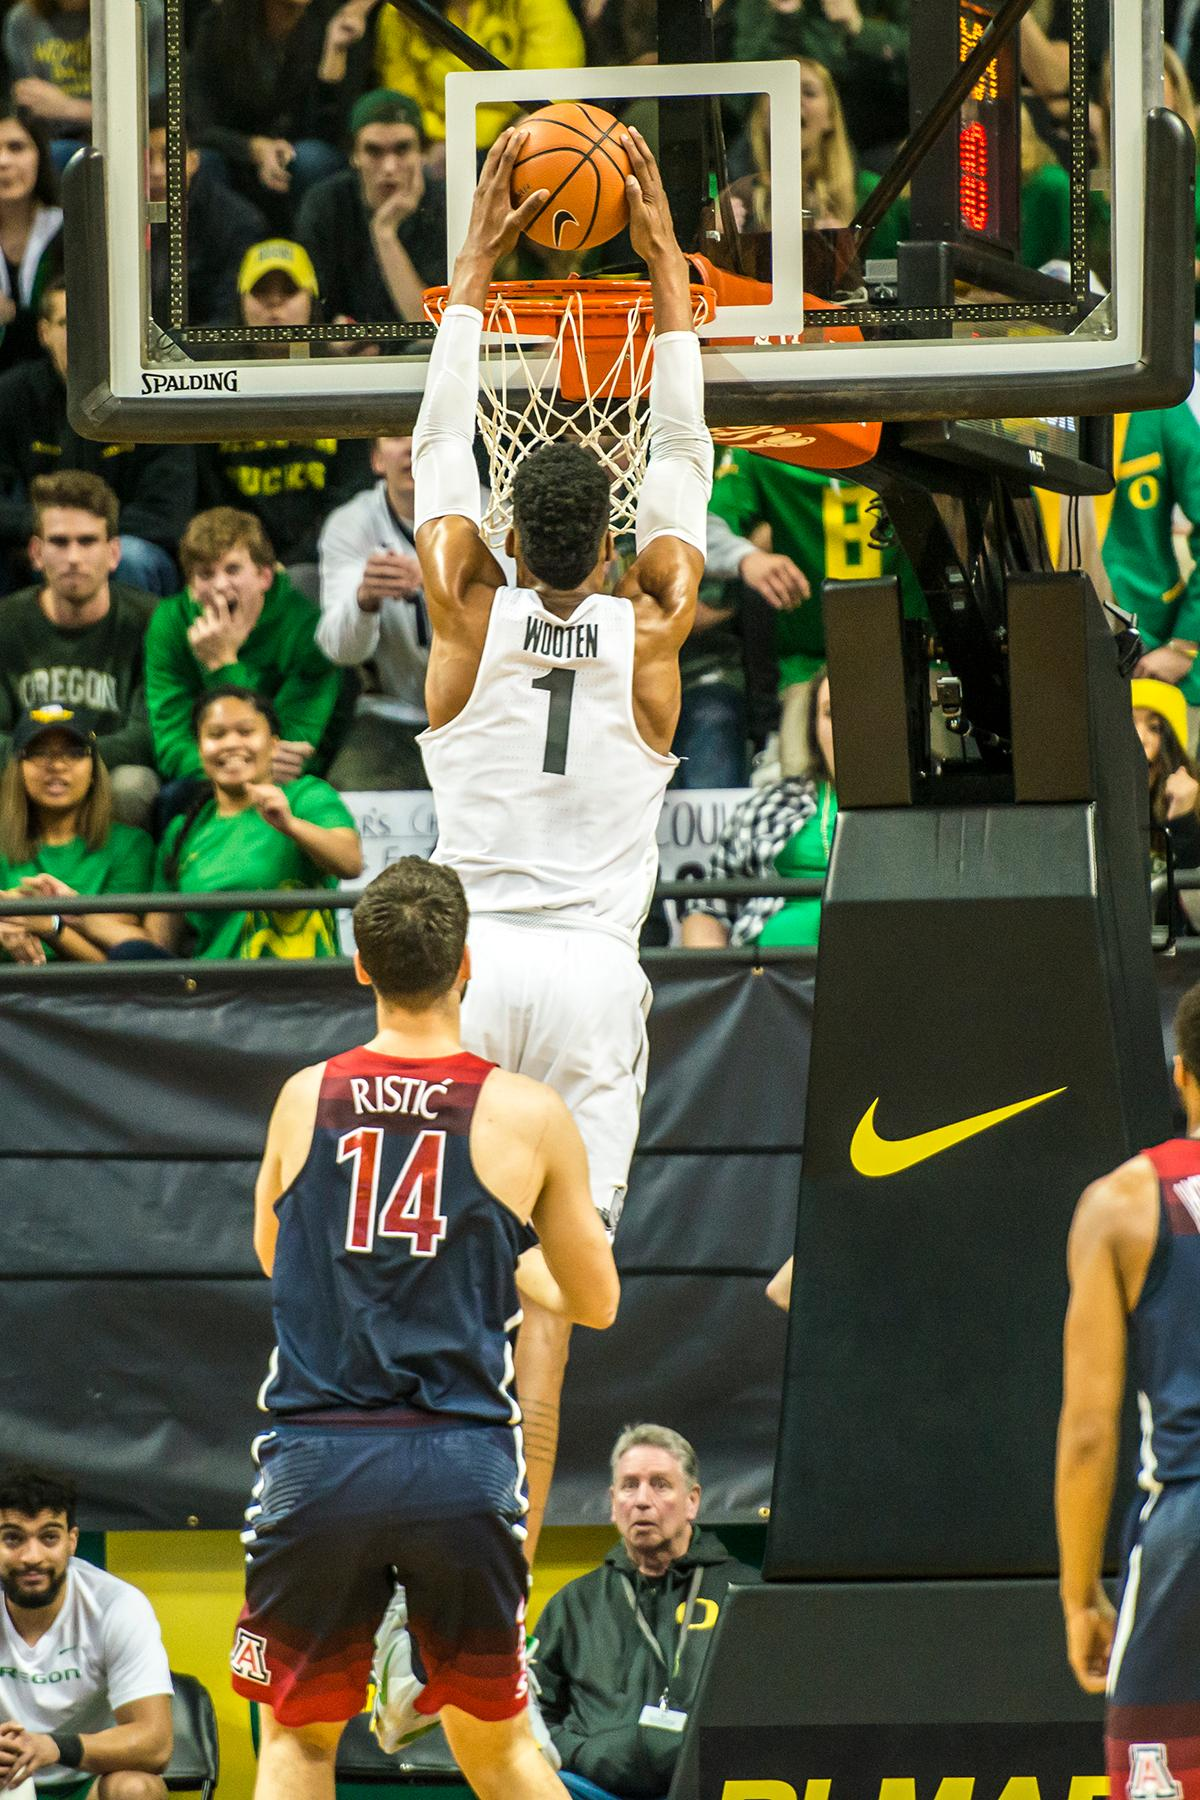 Oregon's Kenny Wooten dunks the ball against Arizona at Matthew Knight Arena Saturday. The Ducks upset the fourteenth ranked Wildcats 98-93 in a stunning overtime win in front of a packed house of over 12,000 fans for their final home game to improve to a 19-10 (9-7 PAC-12) record on the season. Oregon will finish out regular season play on the road in Washington next week against Washington State on Thursday, then Washington on the following Saturday. (Photo by Colin Houck)